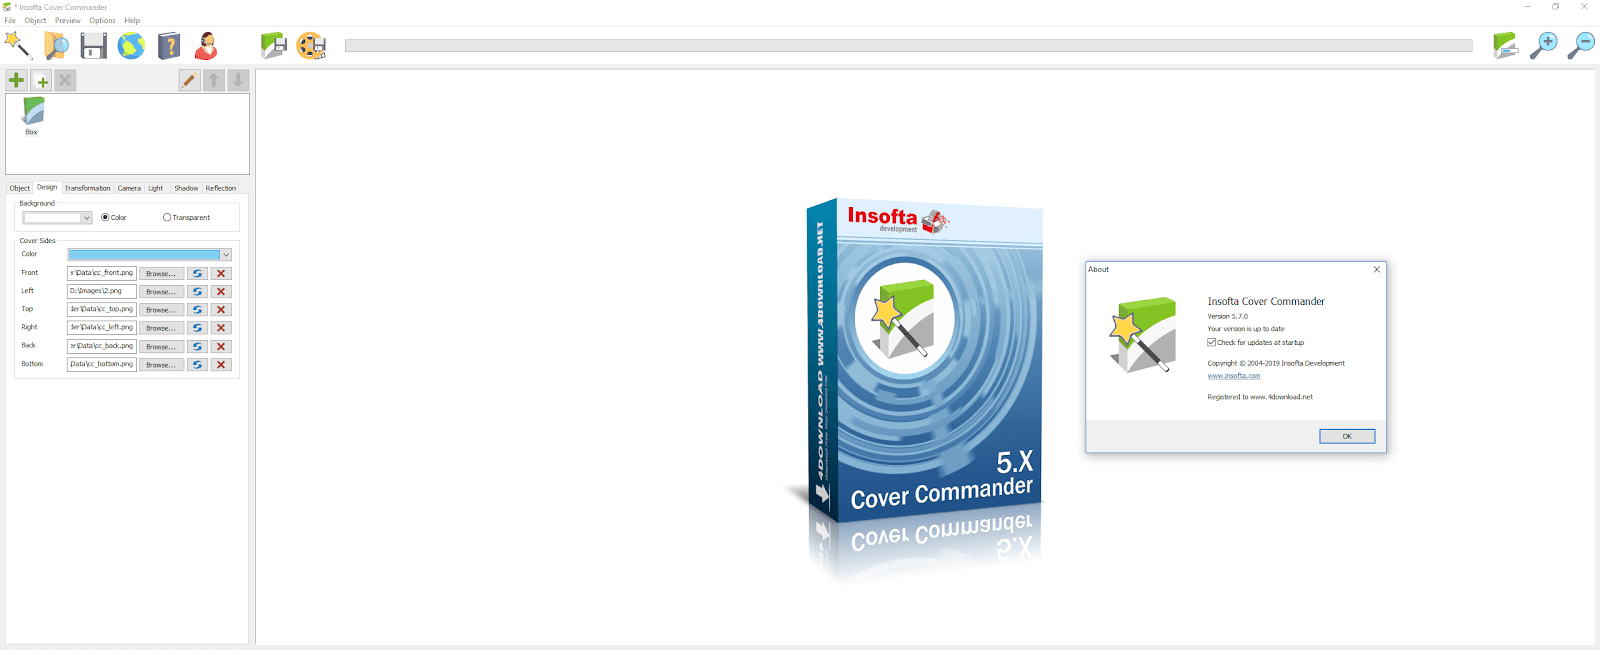 Insofta - Cover Commander 5 Full version